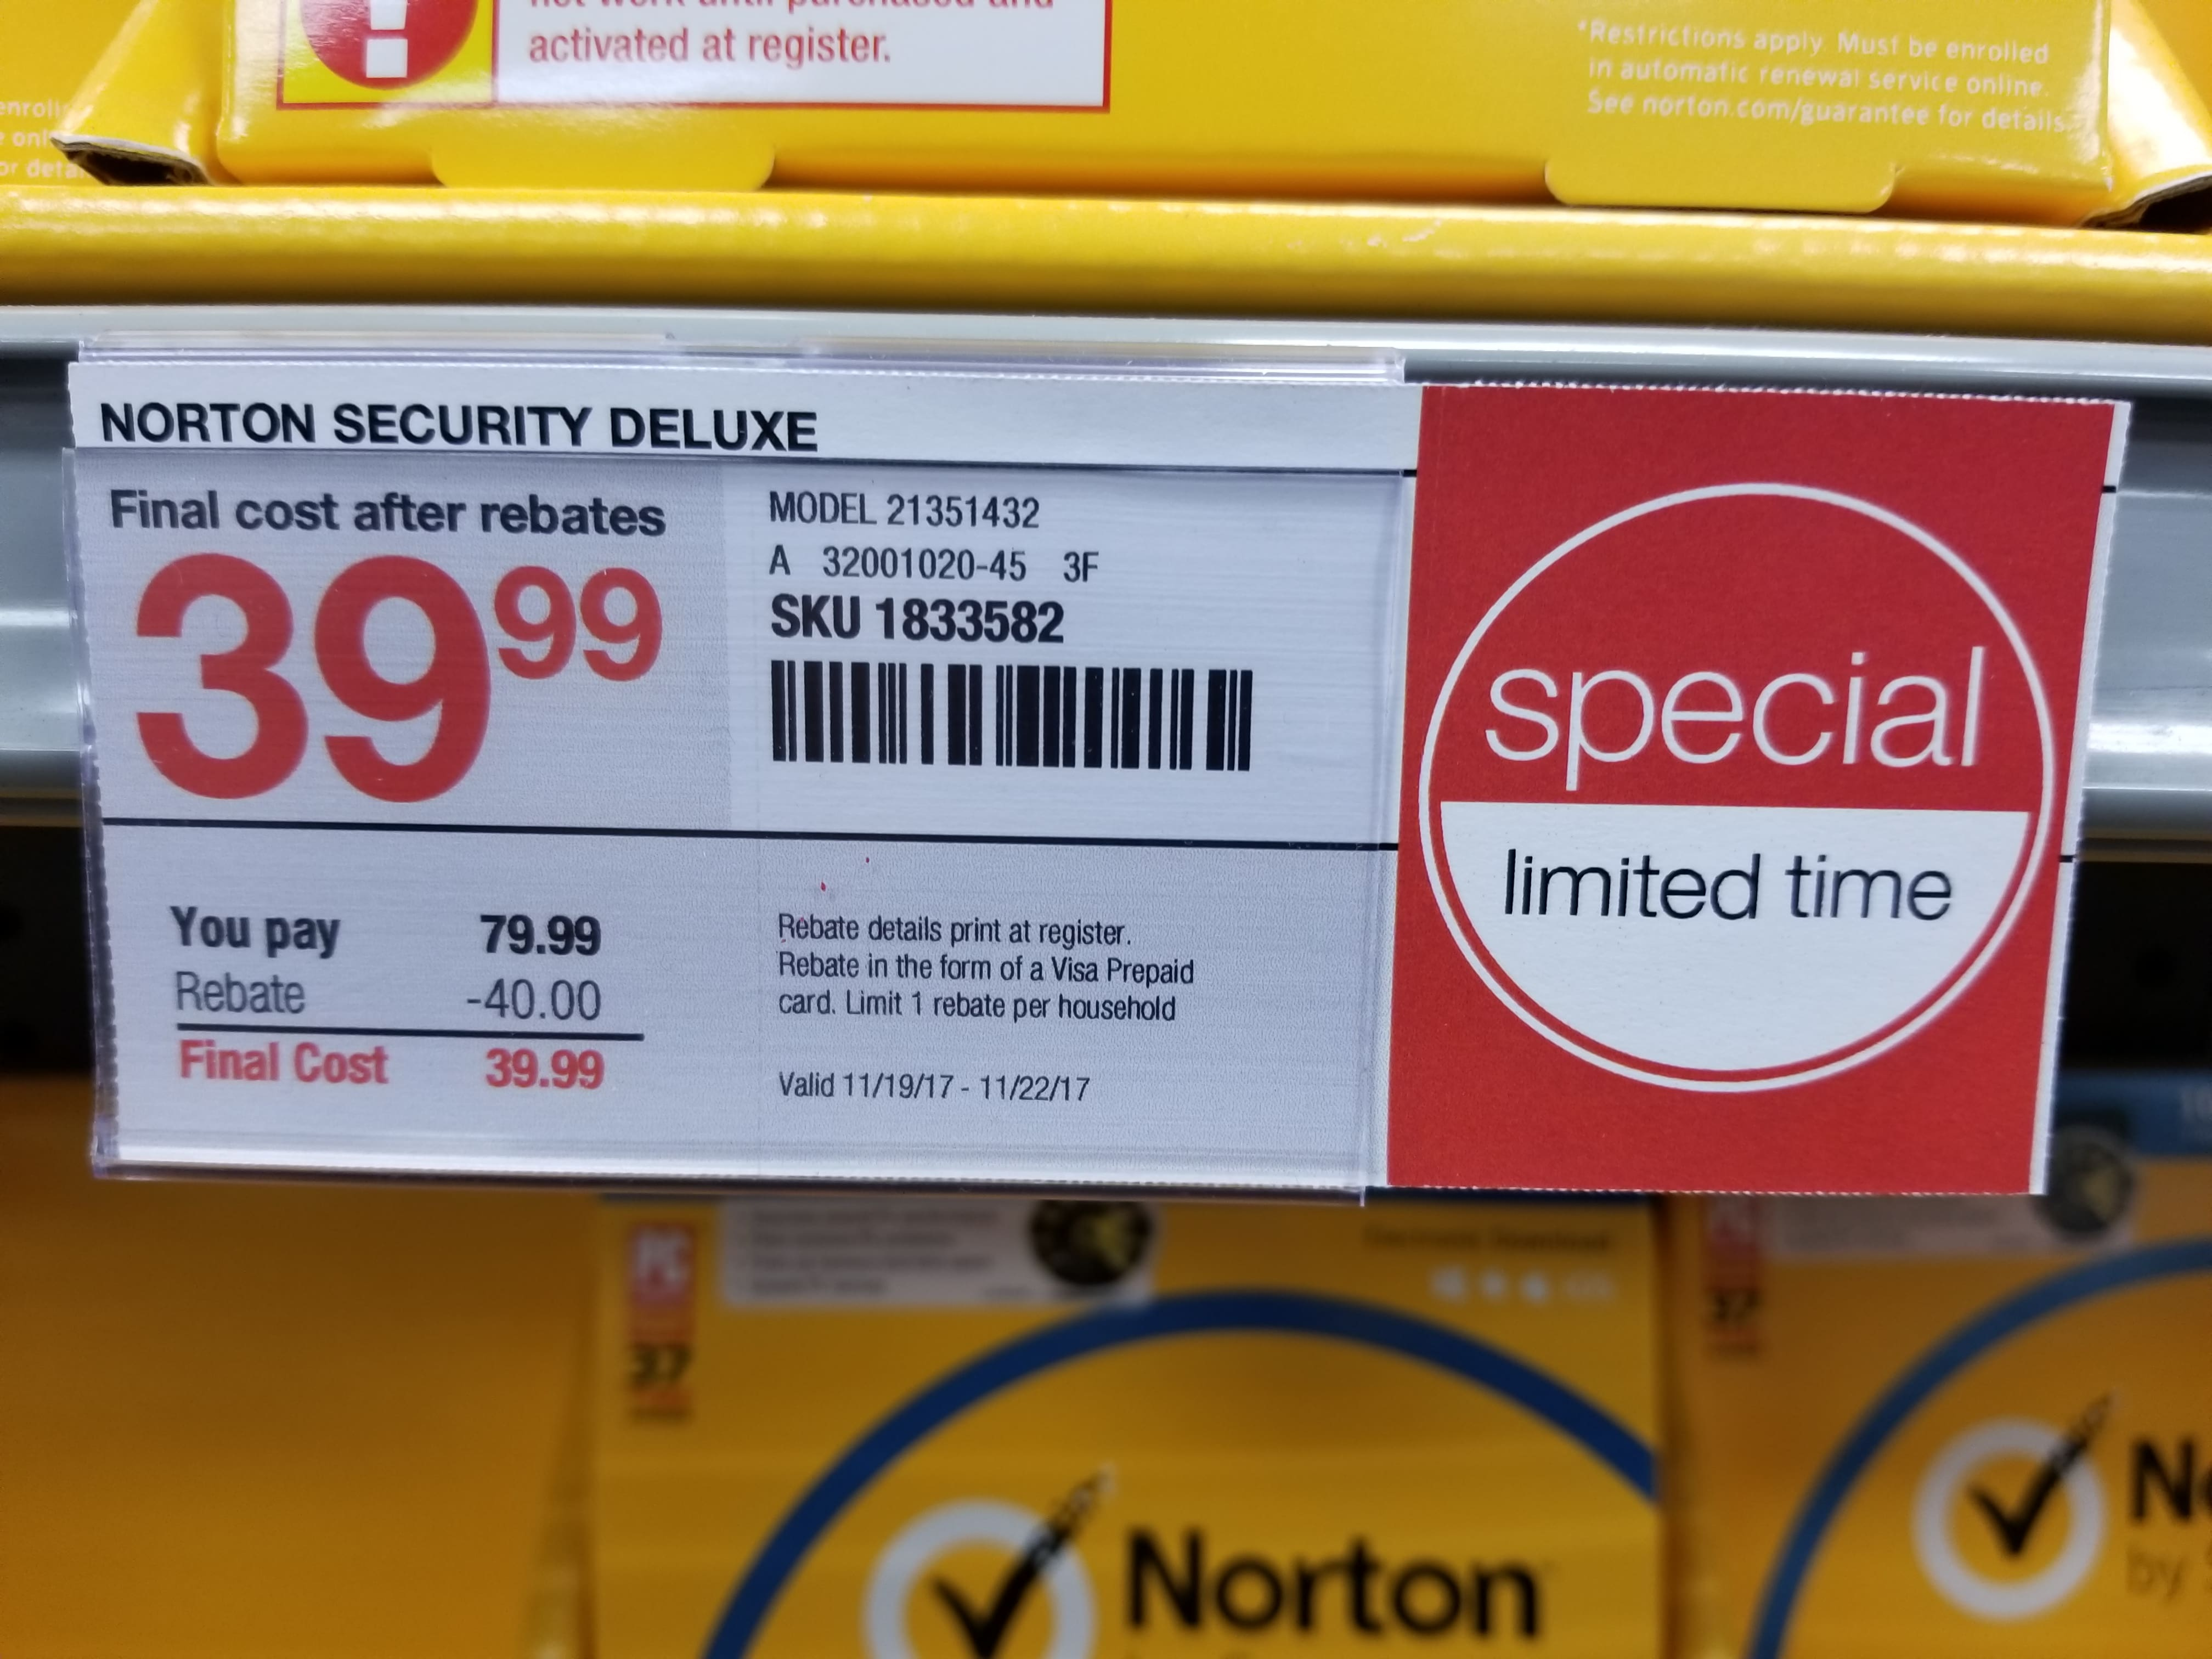 Norton Security Deluxe for 5-Devices, Staples B&M ($13.99 + $40 Visa Prepaid Card)